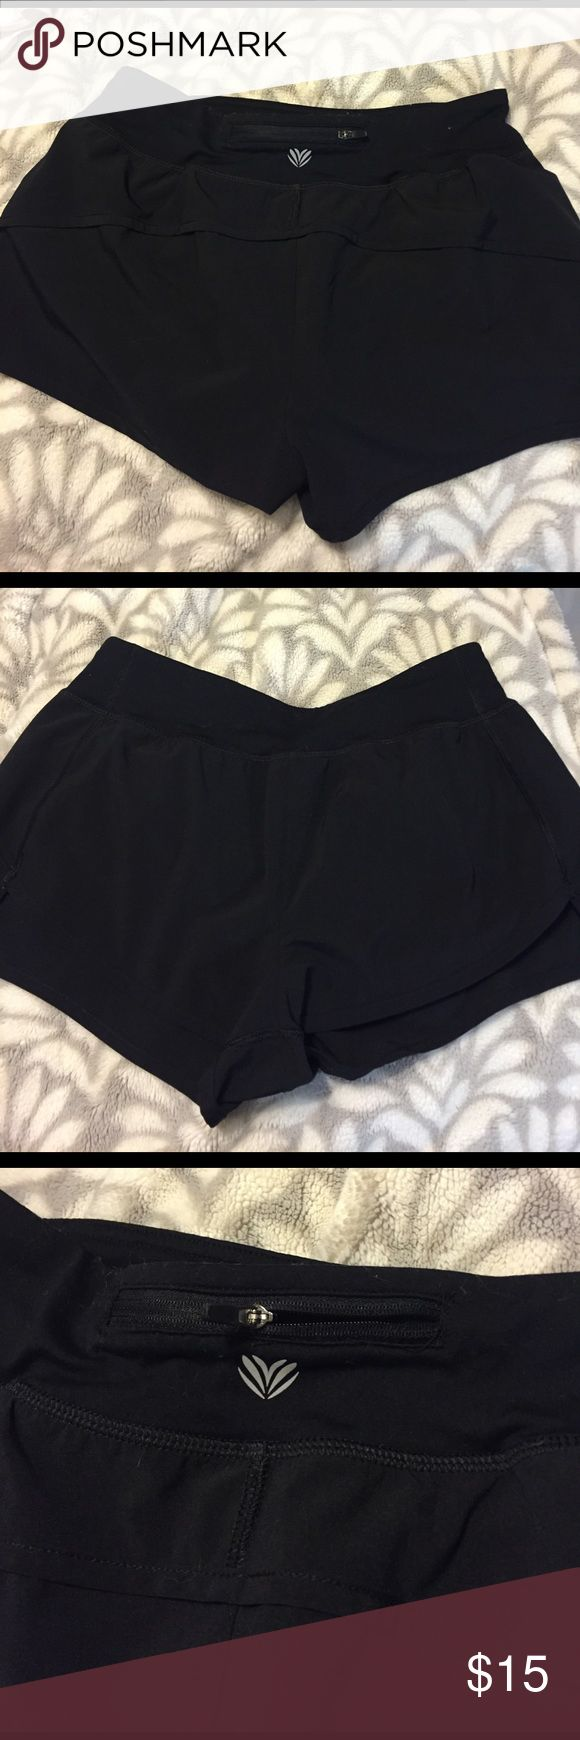 Forever 21 Lululemon speed shorts dupe These are NOT Lululemon but are dupes of their speed shorts. Size medium with pocket in back. Open to offers lululemon athletica Shorts